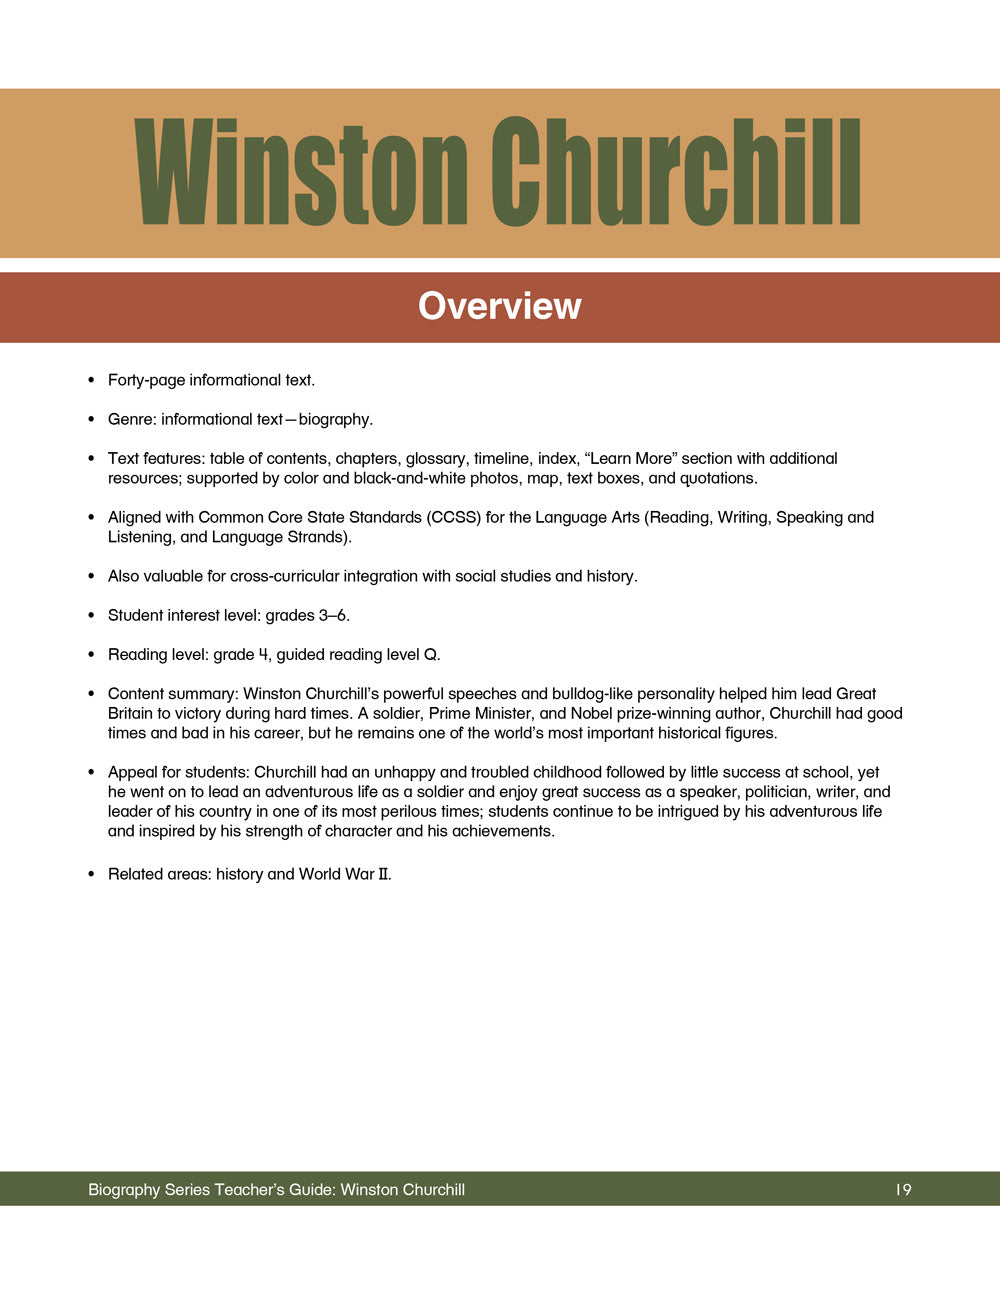 Winston Churchill Teacher's Guide